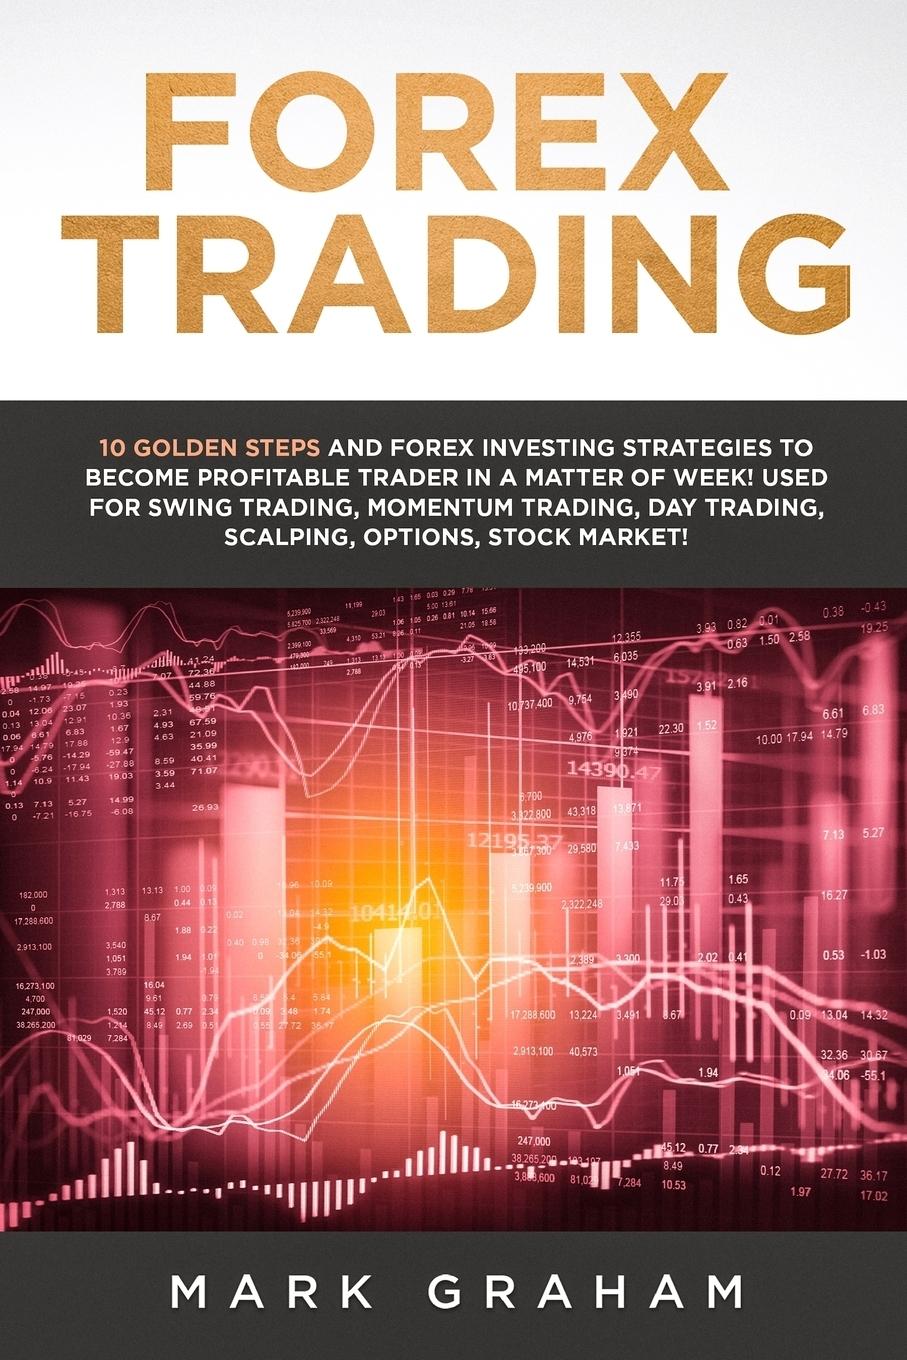 Mark Graham Forex Trading. 10 Golden Steps and Forex Investing Strategies to Become Profitable Trader in a Matter of Week! Used for Swing Trading, Momentum Trading, Day Trading, Scalping, Options, Stock Market!